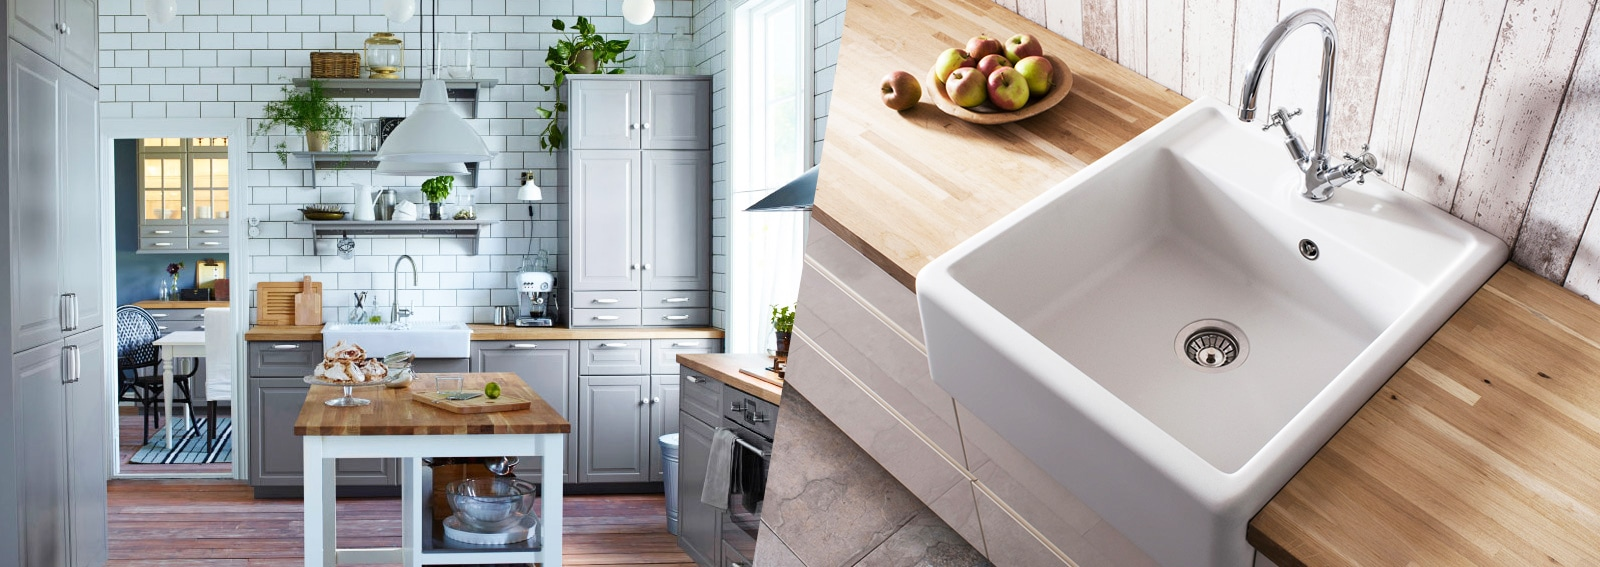 Awesome Lavabo Ceramica Cucina Pictures - Ideas & Design 2017 ...